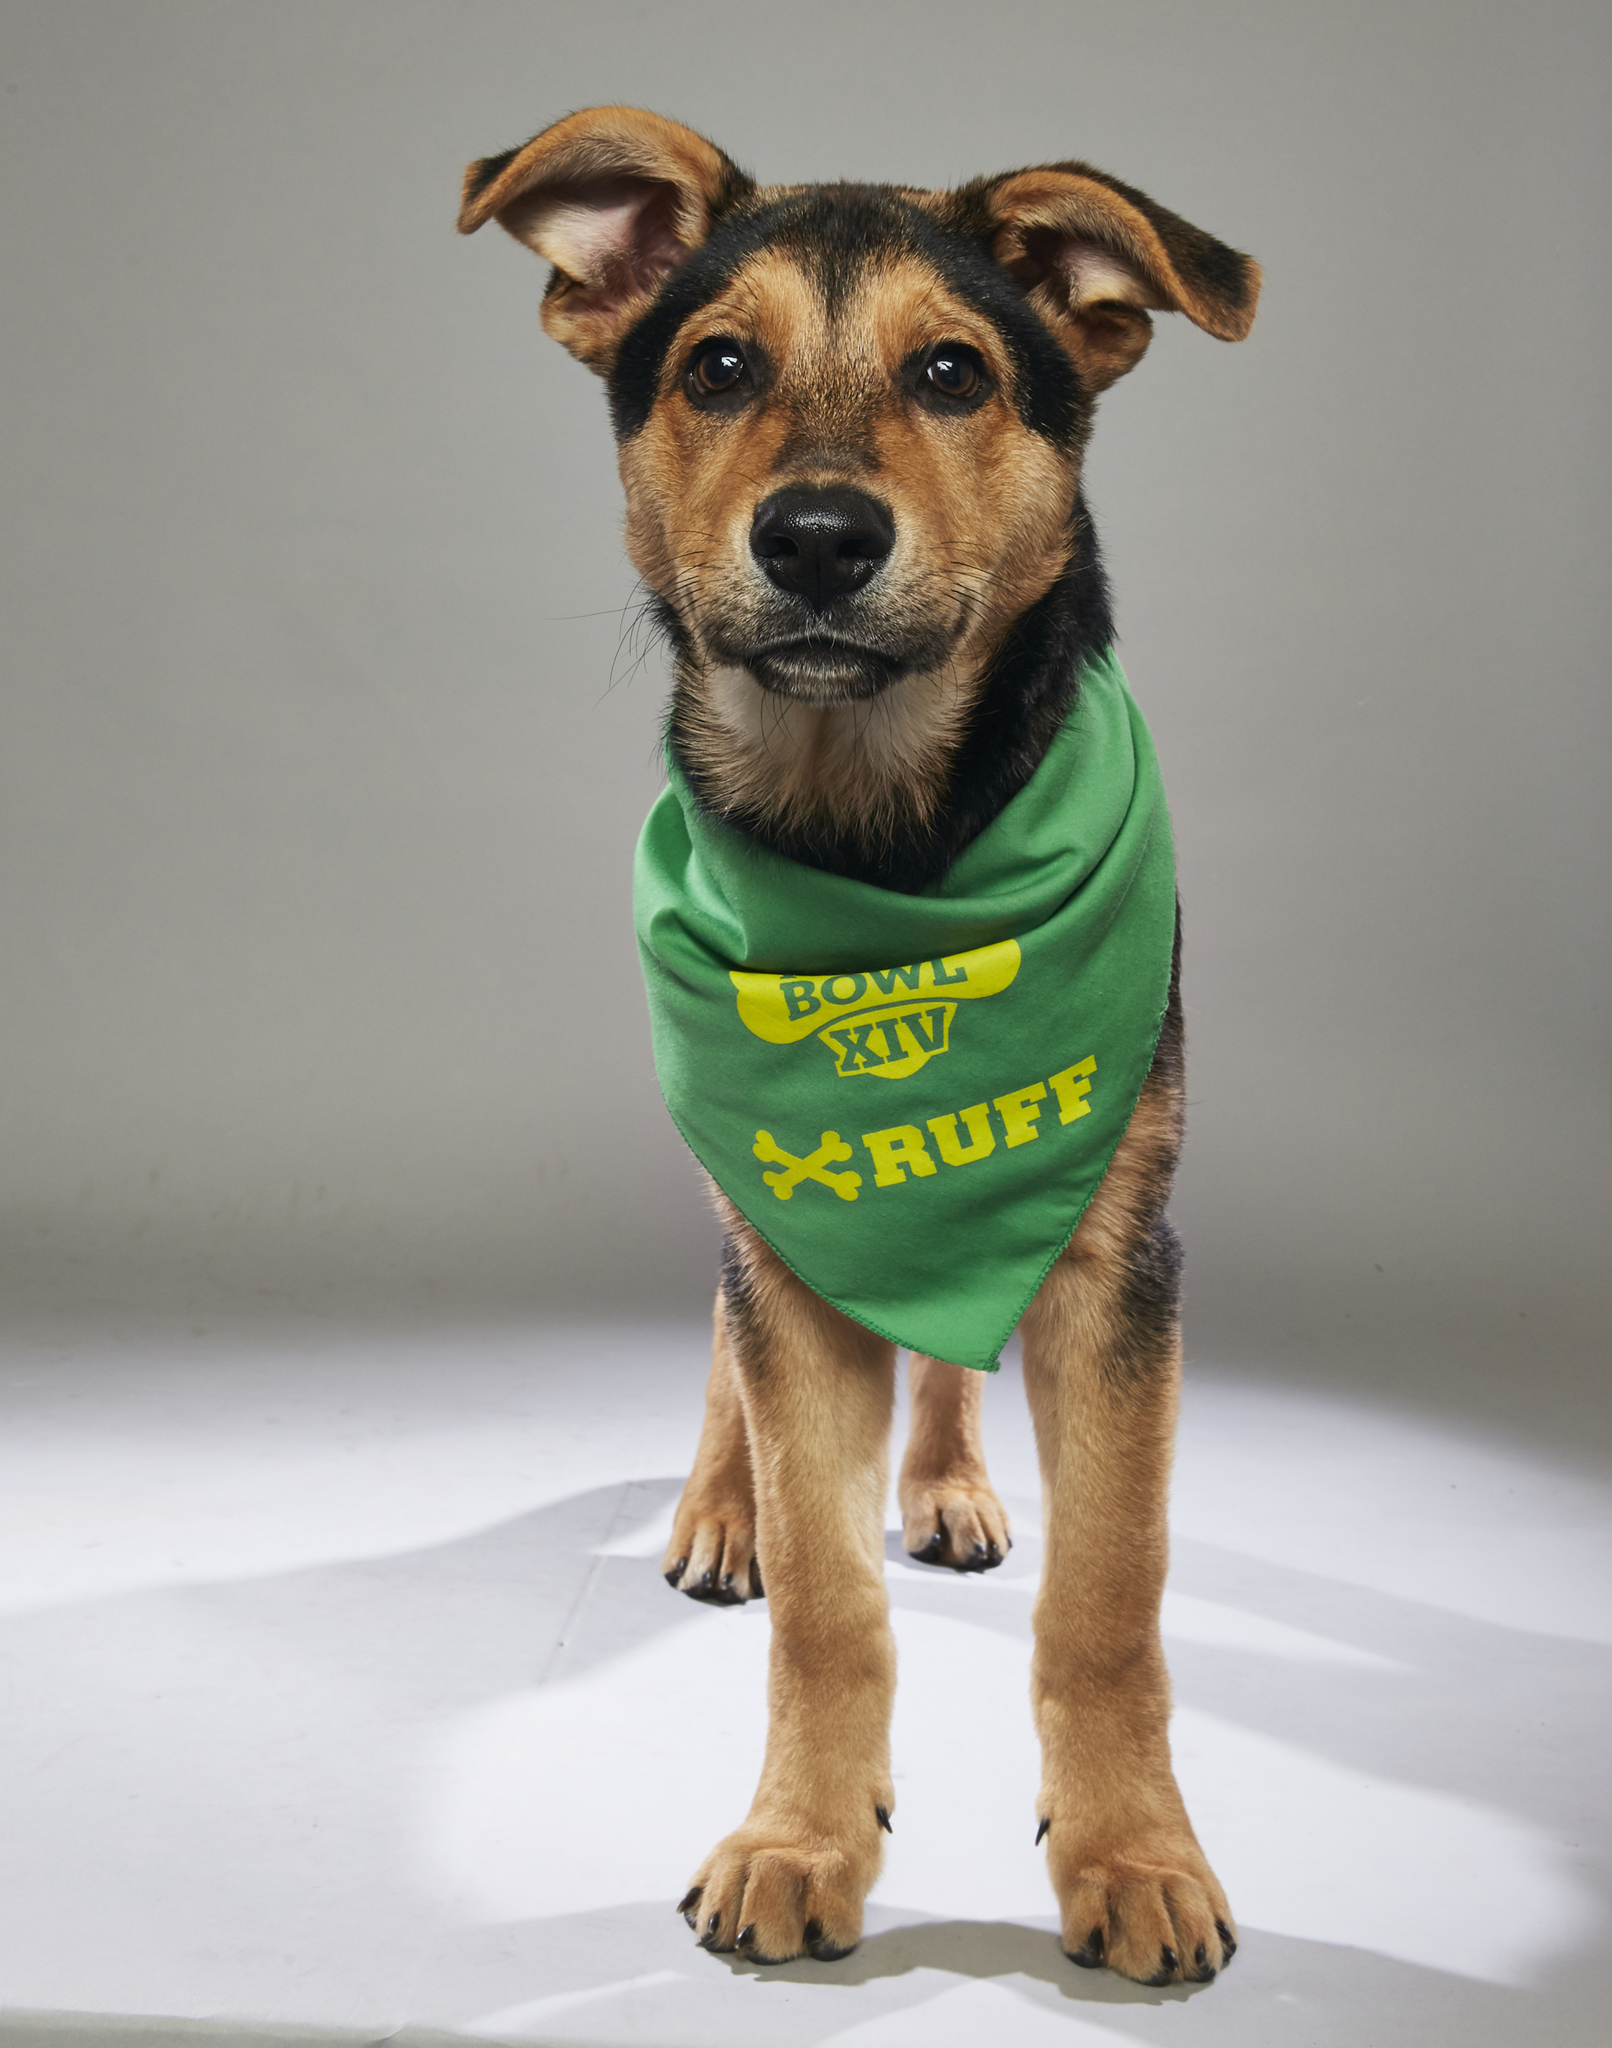 Edwin, a local San Antonio pup will be in Animal Planet's Puppy Bowl.